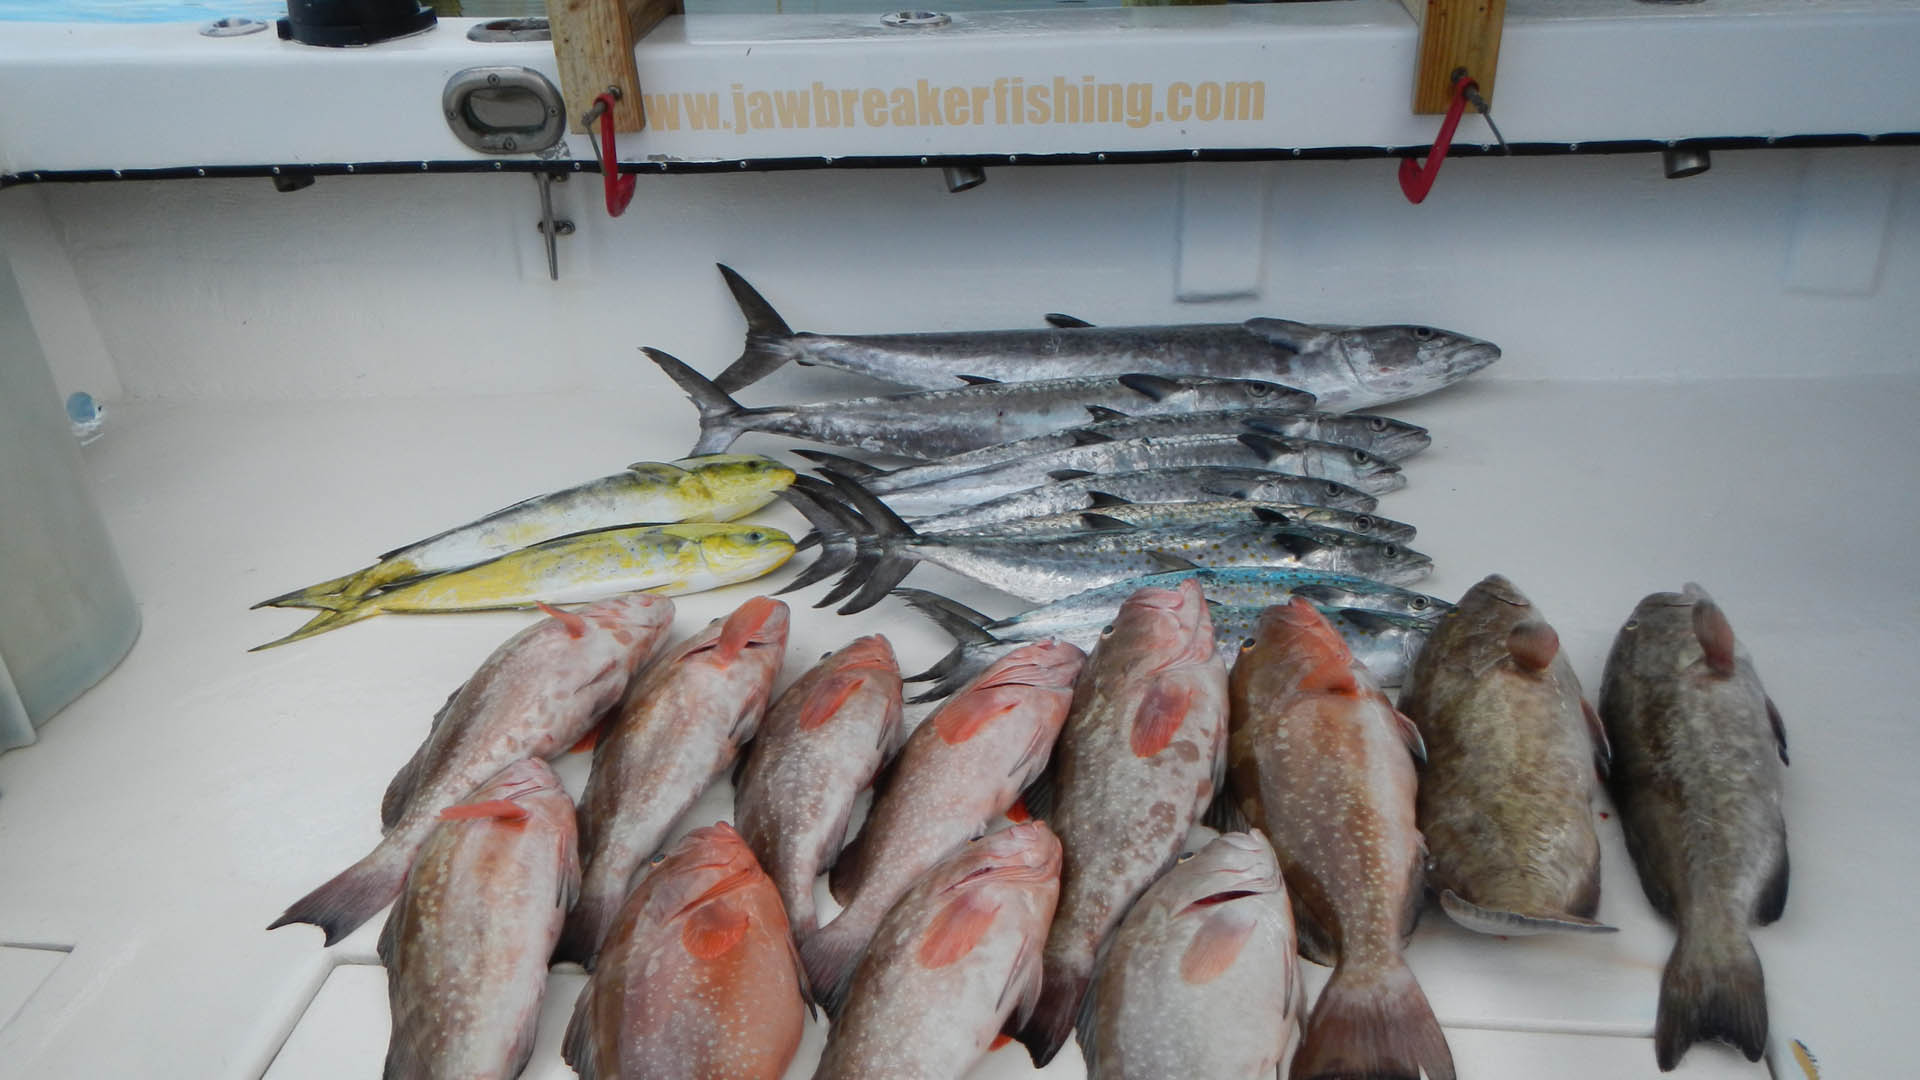 Grouper fish caught on charter by Jawbreaker Charters.